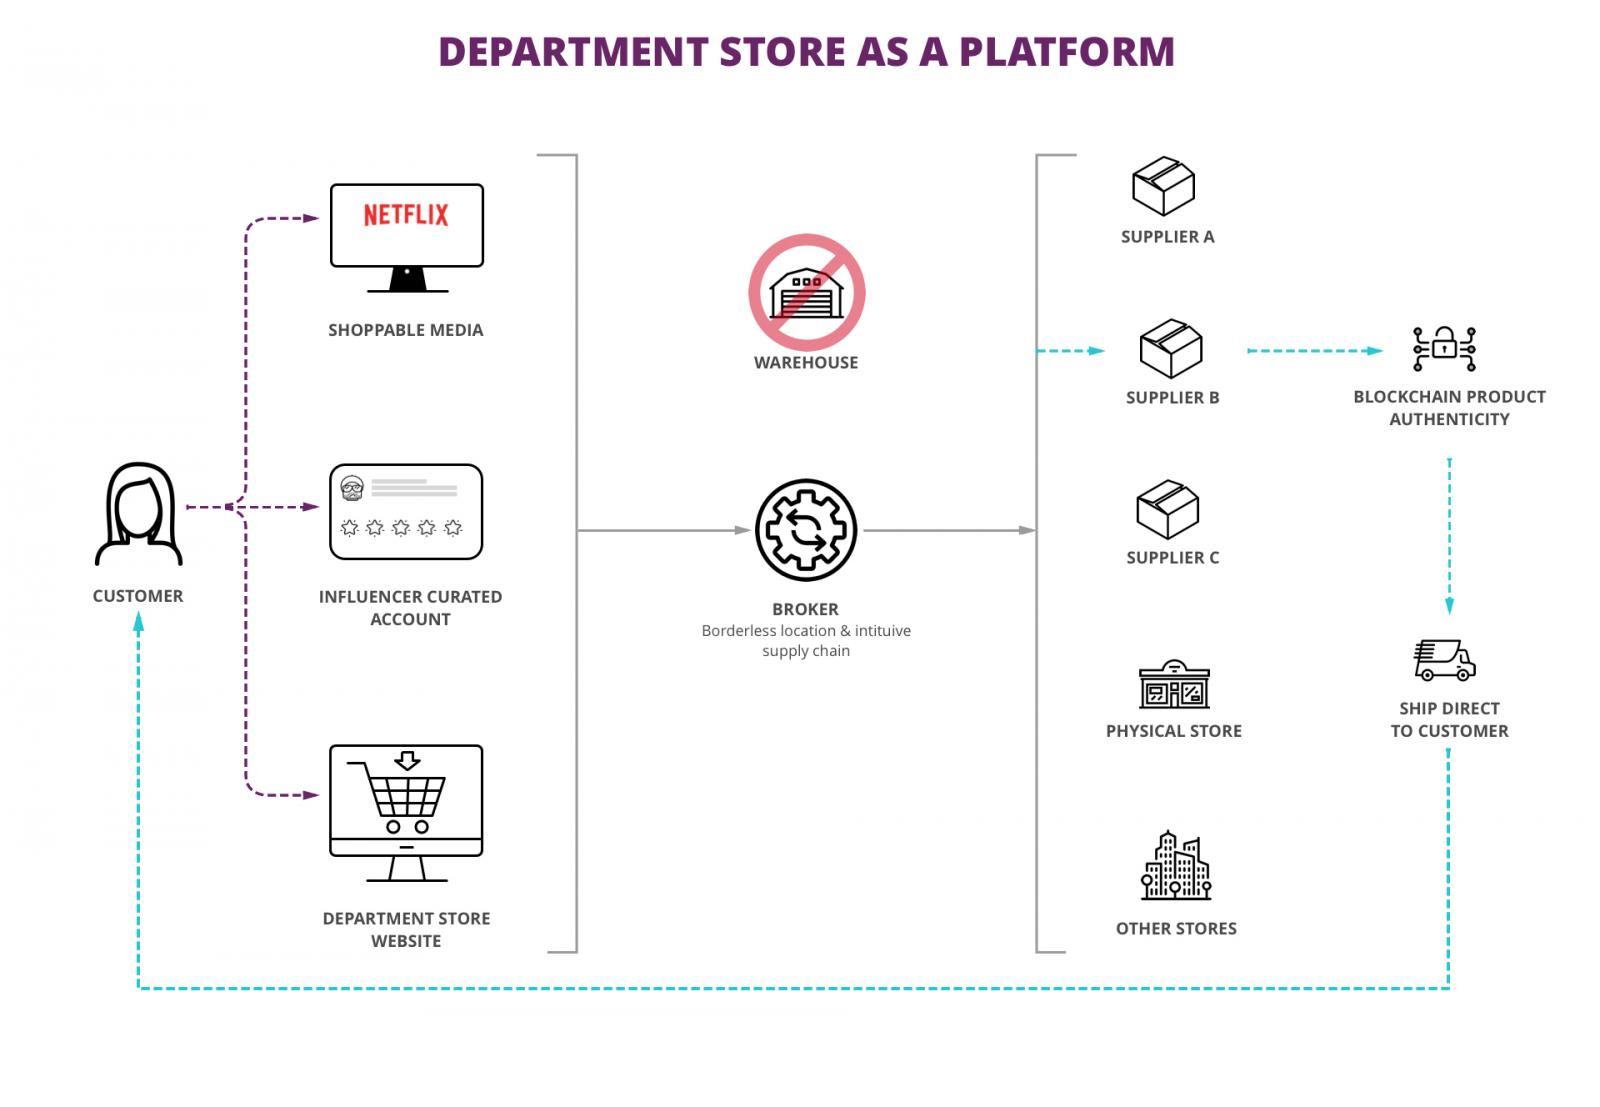 Department store as a platform graphic